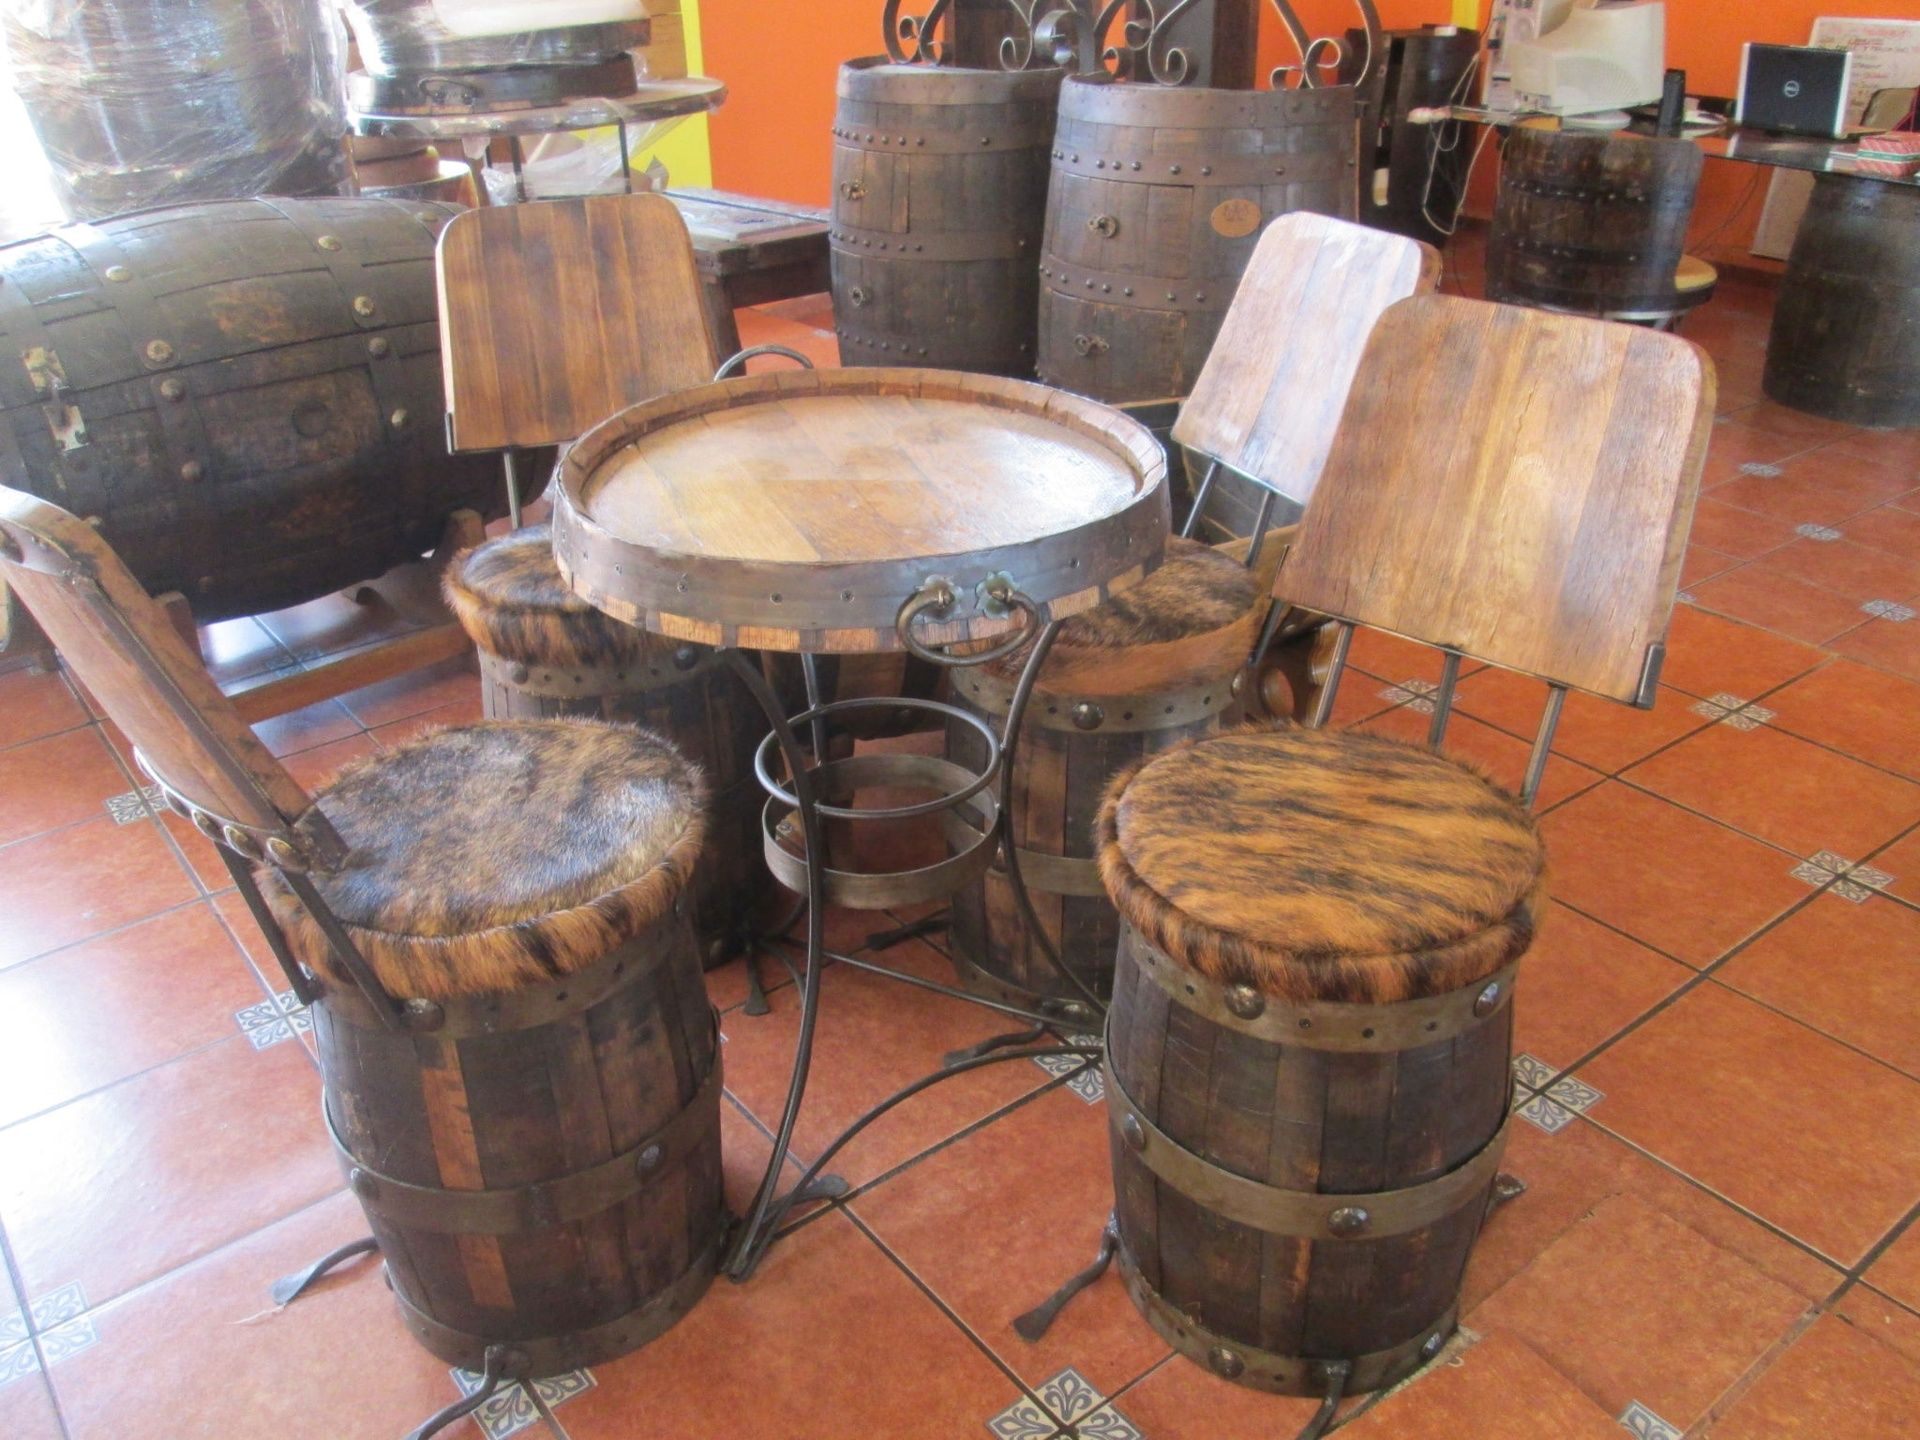 Barrel Furniture Coffee Table With Barrel Stools